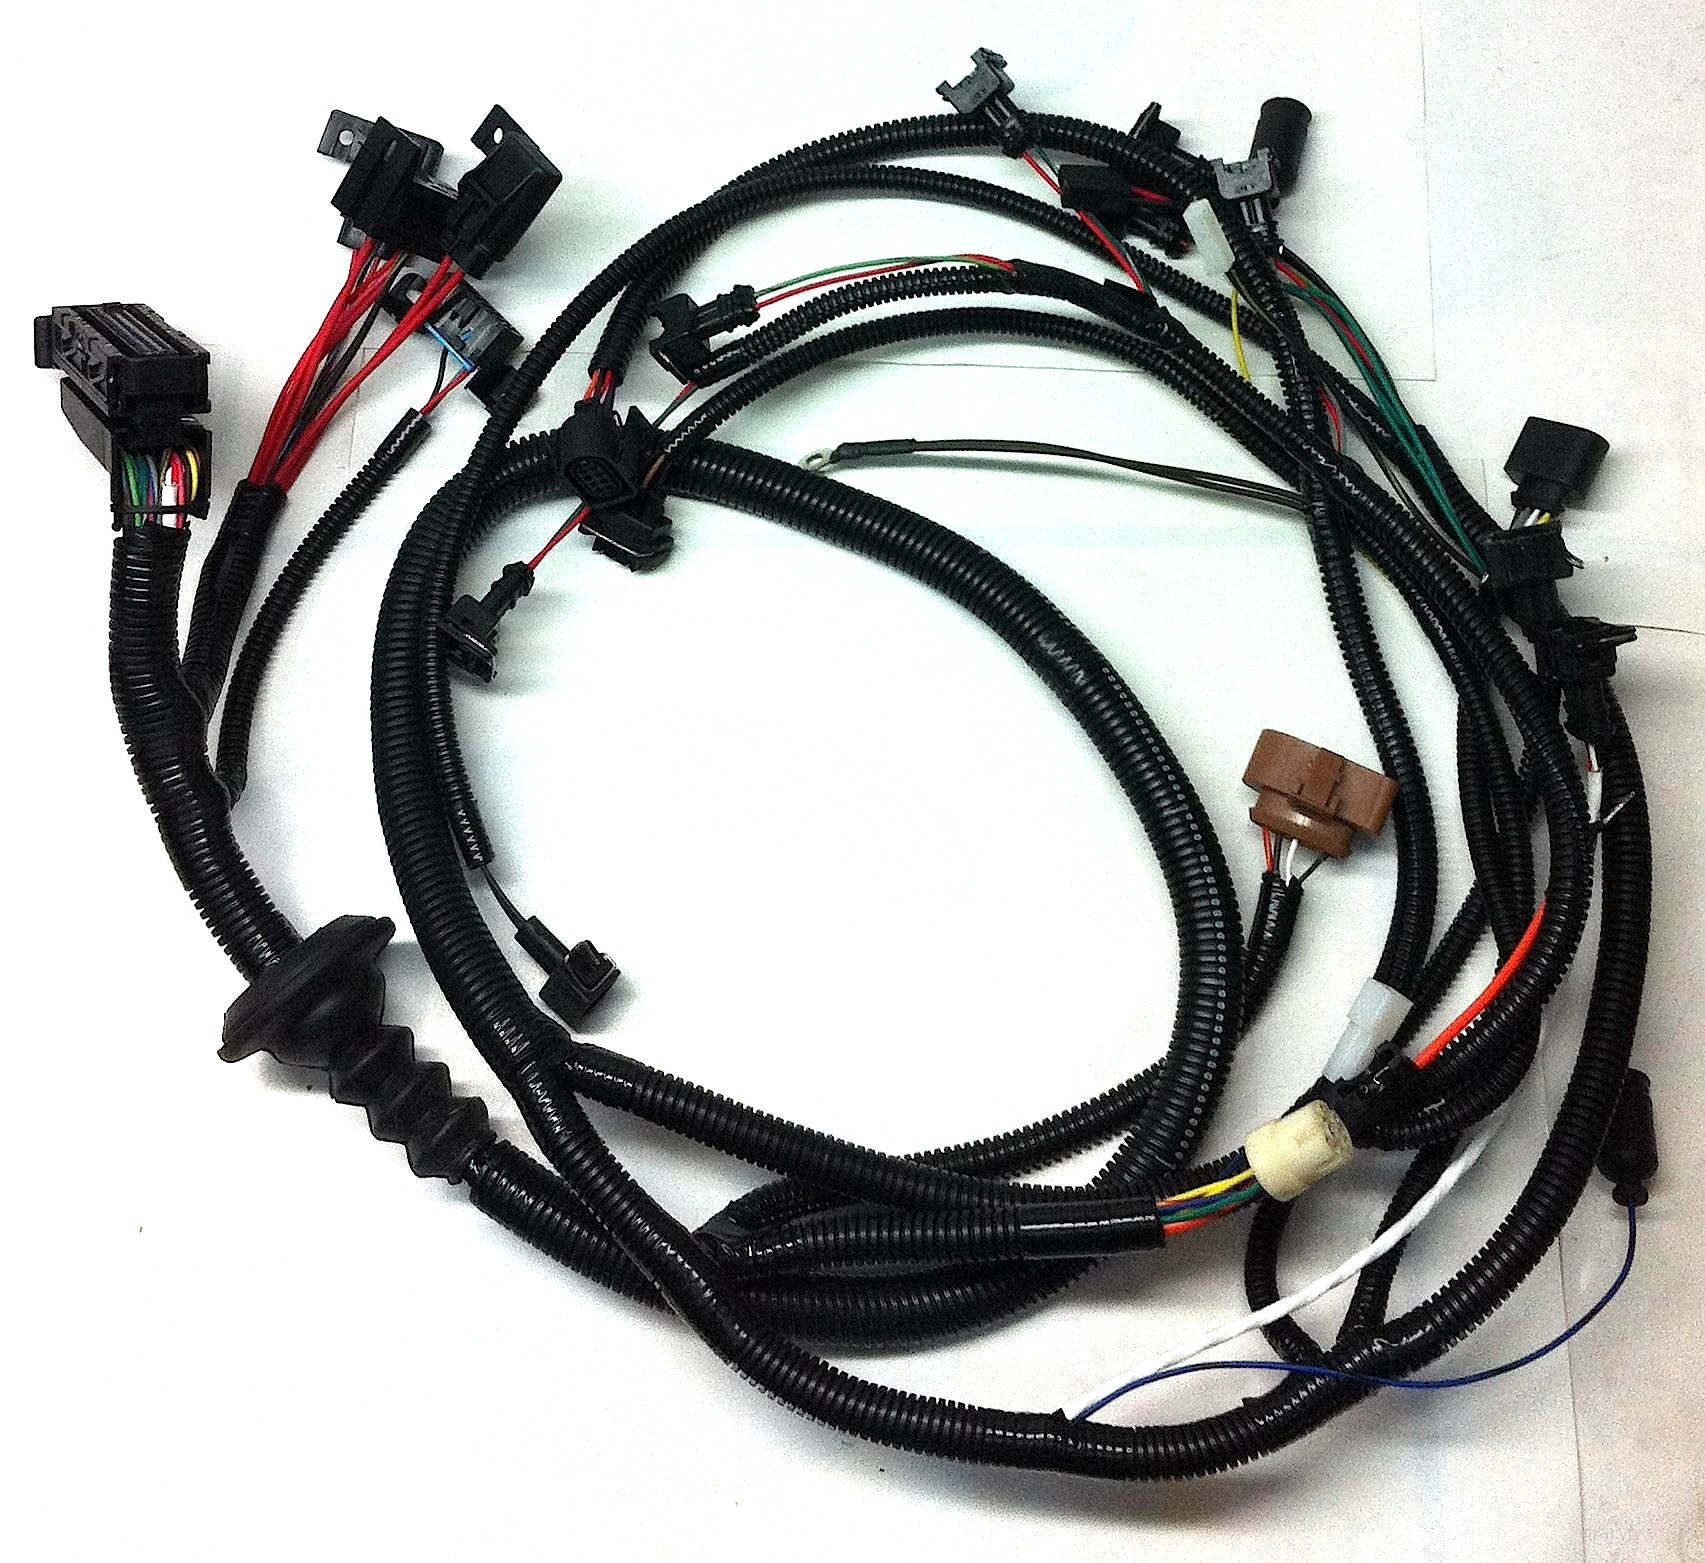 Wiring_Harness_2LR 2lr tiico conversion wiring harness foreign auto & supply, inc automotive wiring harness at mifinder.co